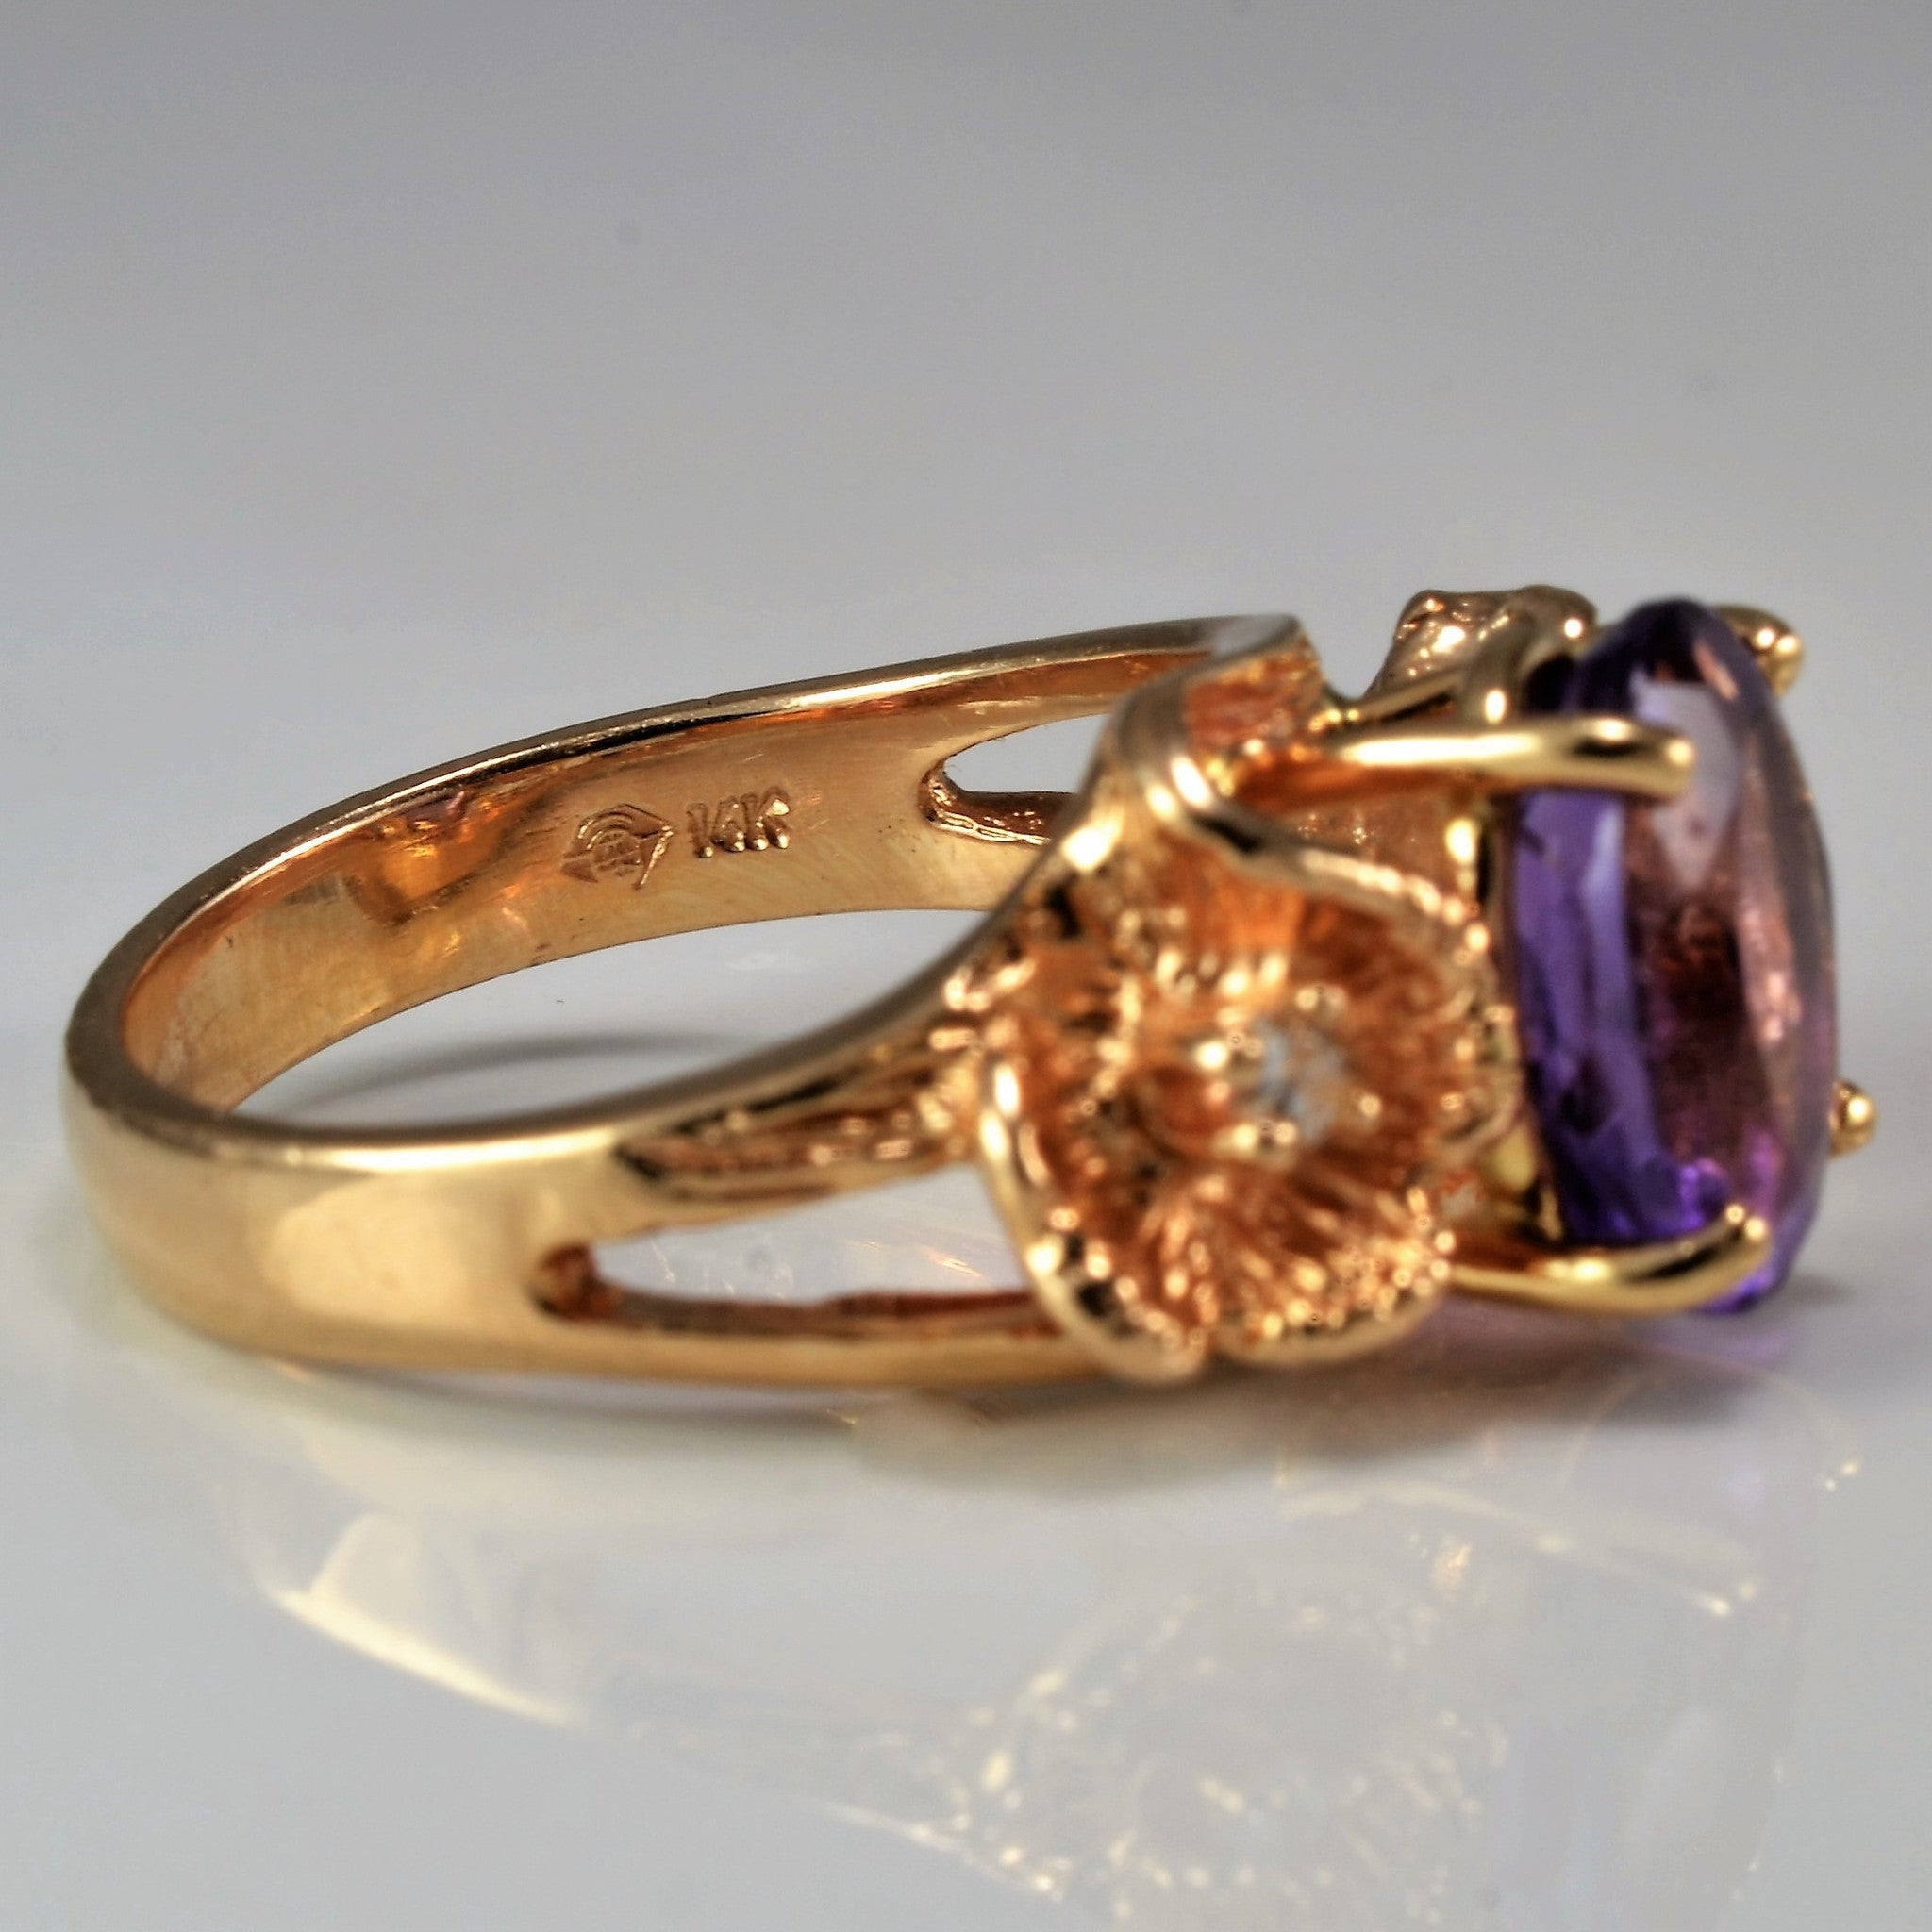 Beautiful Amethyst & Diamond Cocktail Ring | 0.04 ctw, SZ 6.5 |